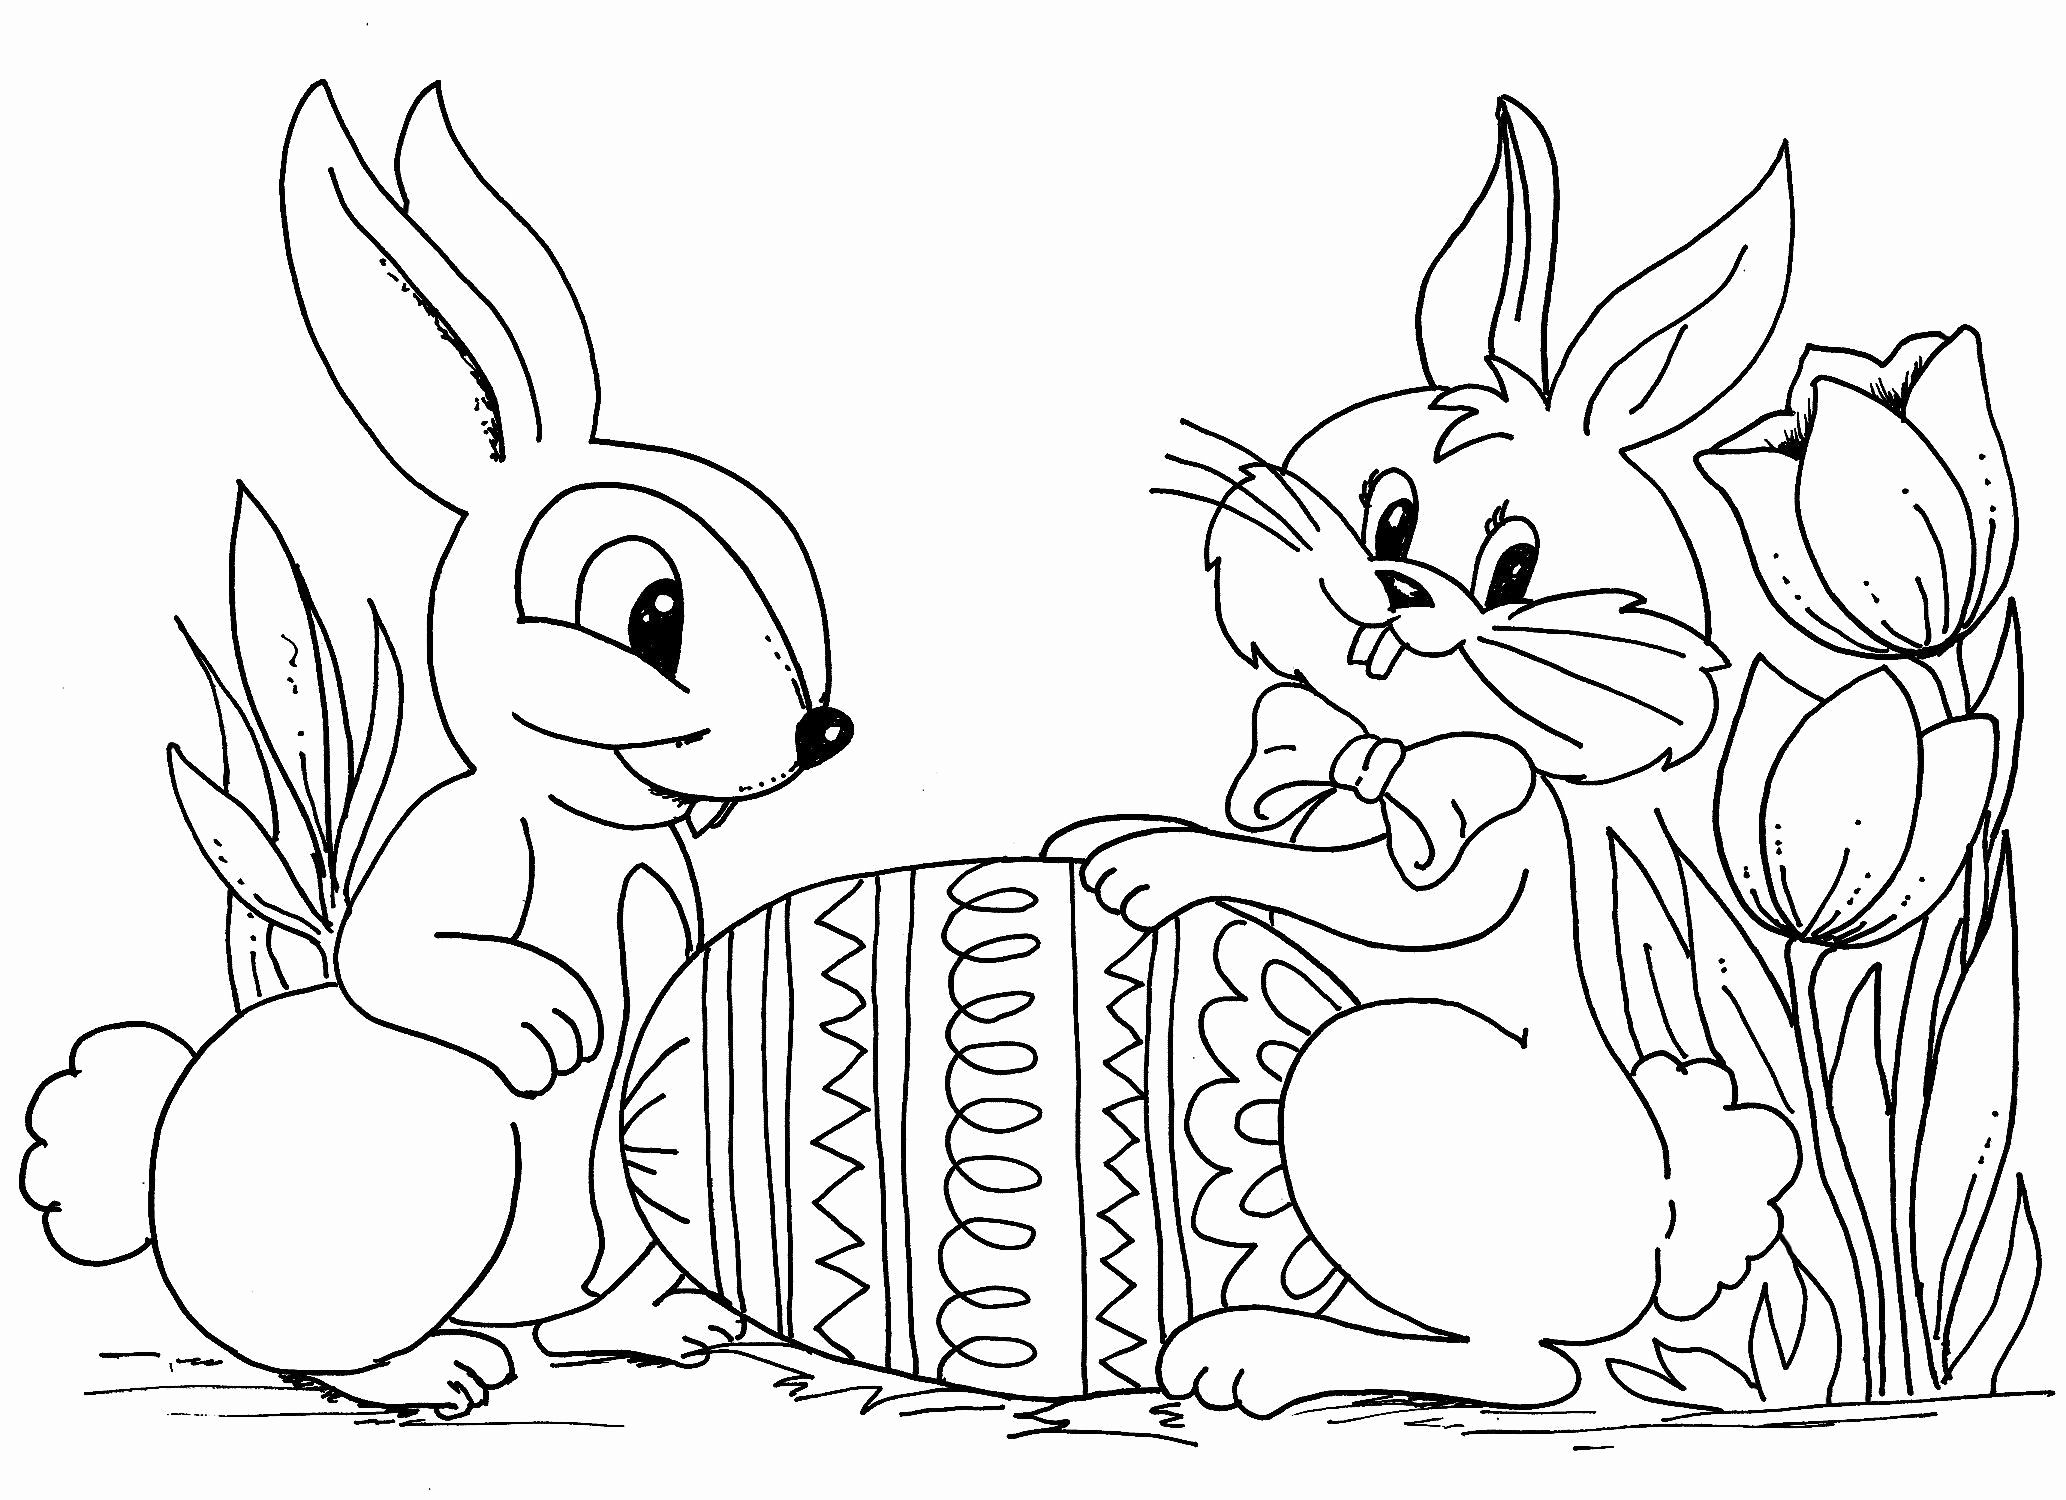 Easter Bunny With Carrot Coloring Pages Elegant New Rabbit Page To Color Collection Printable Bunny Coloring Pages Easter Coloring Pages Easter Bunny Colouring